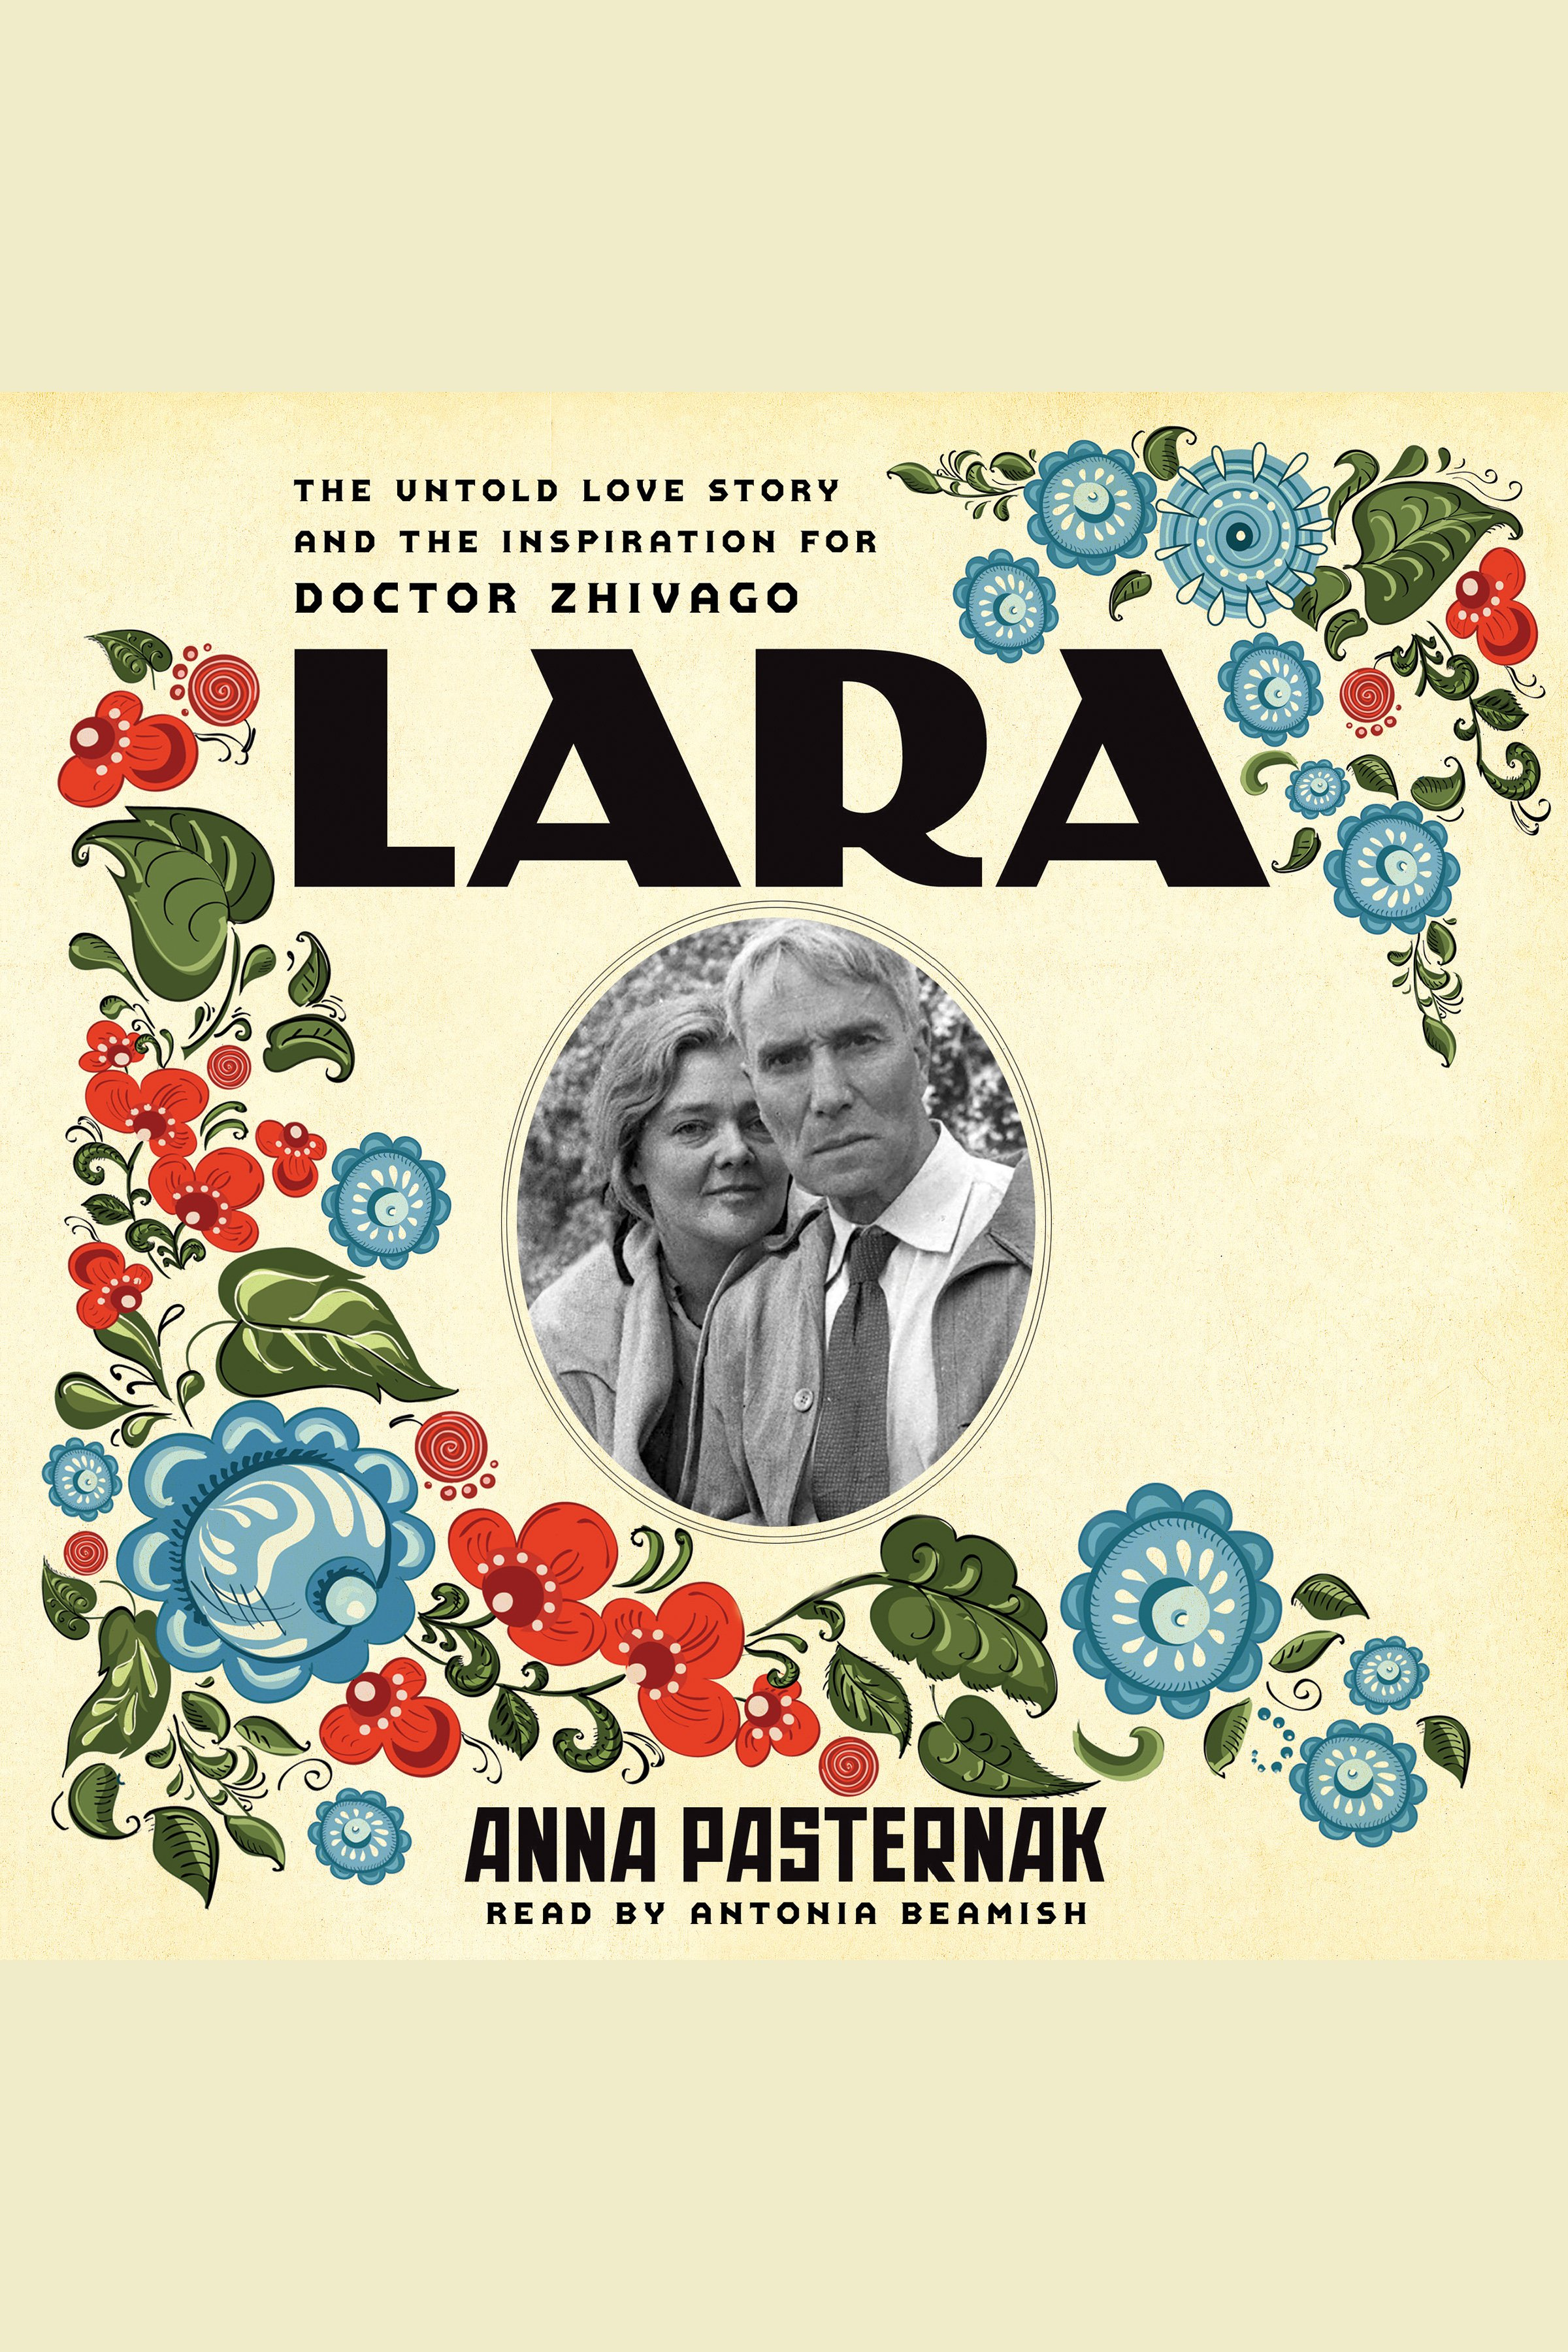 Lara The Untold Love Story and the Inspiration for Doctor Zhivago cover image